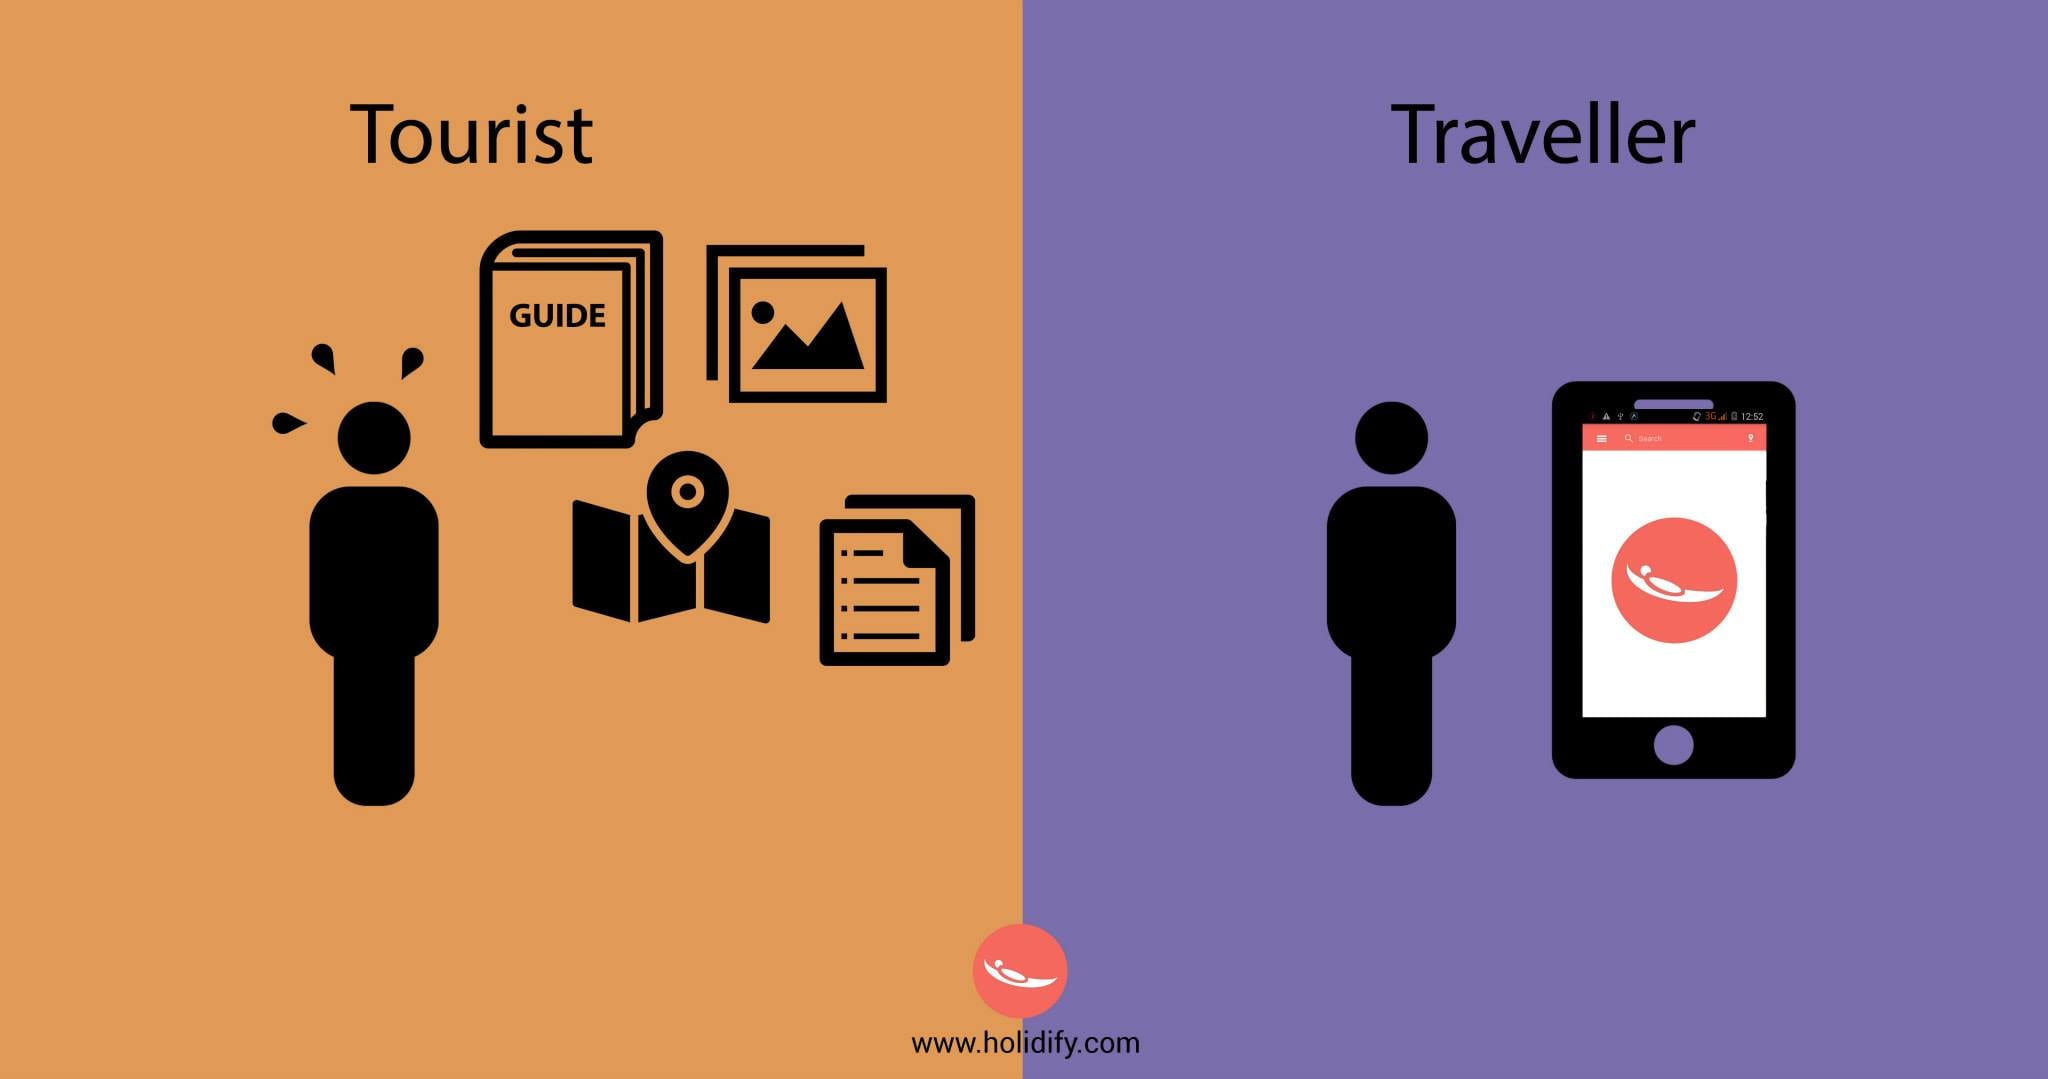 tourist-vs-traveller-freeyork-9